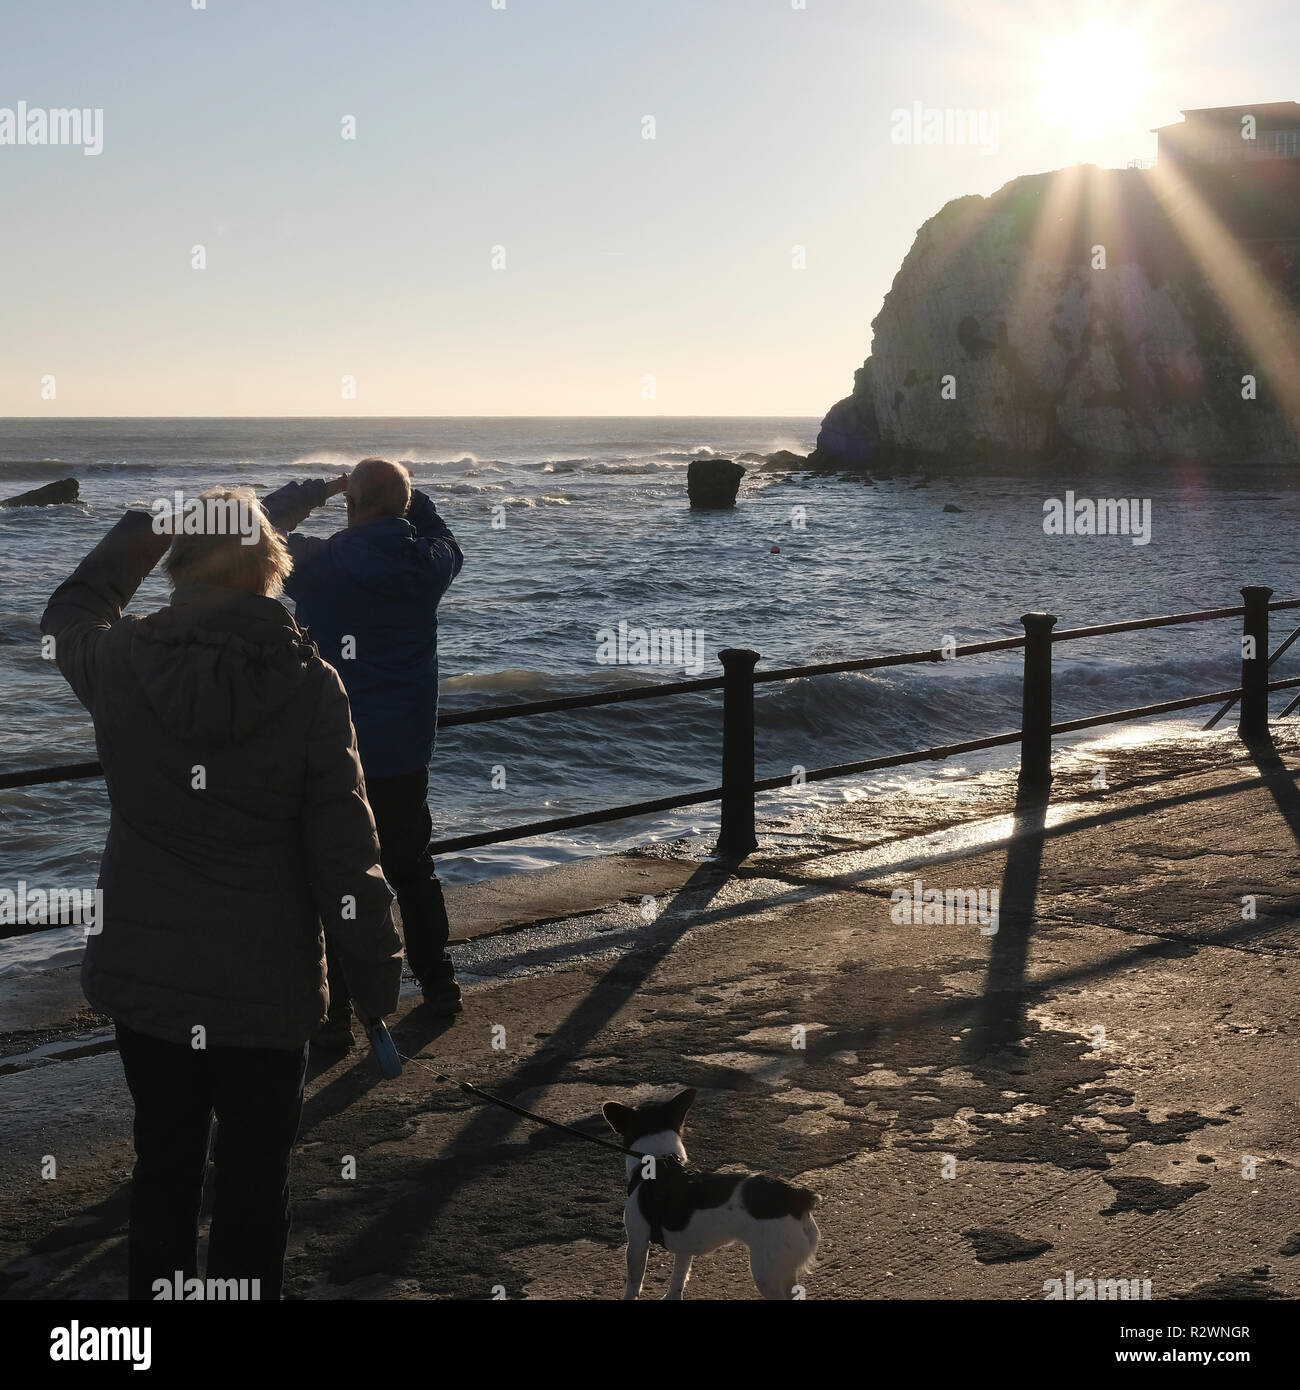 Afternoon walkers stop to watch the surfers on the horizon at Freshwater Bay Isle of Wight - Stock Image